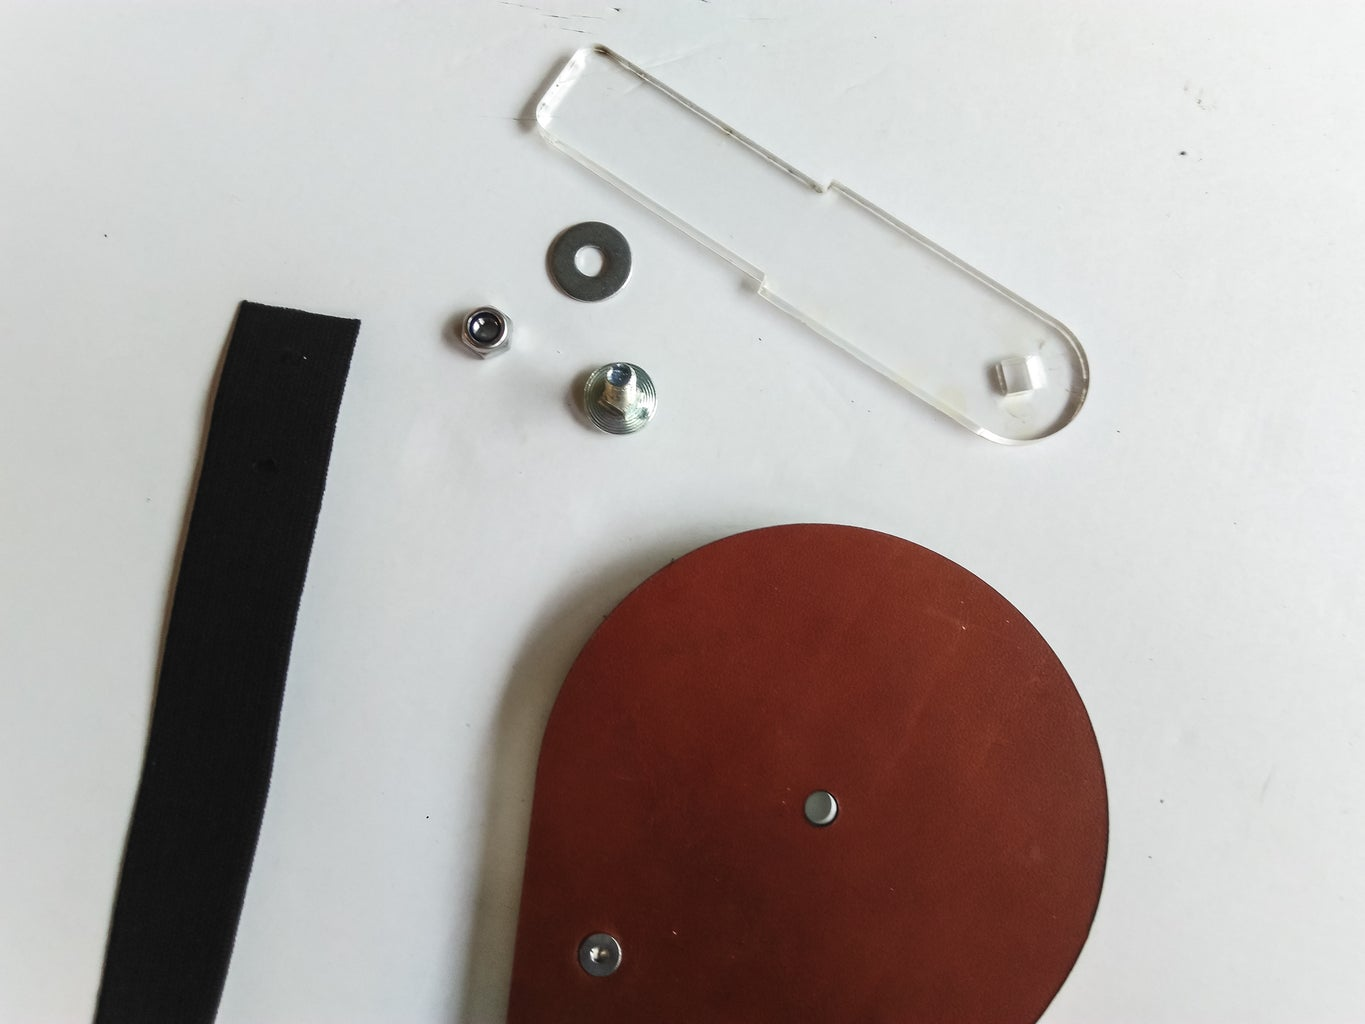 Add Pivot Arm and Handstrap to the Handplate